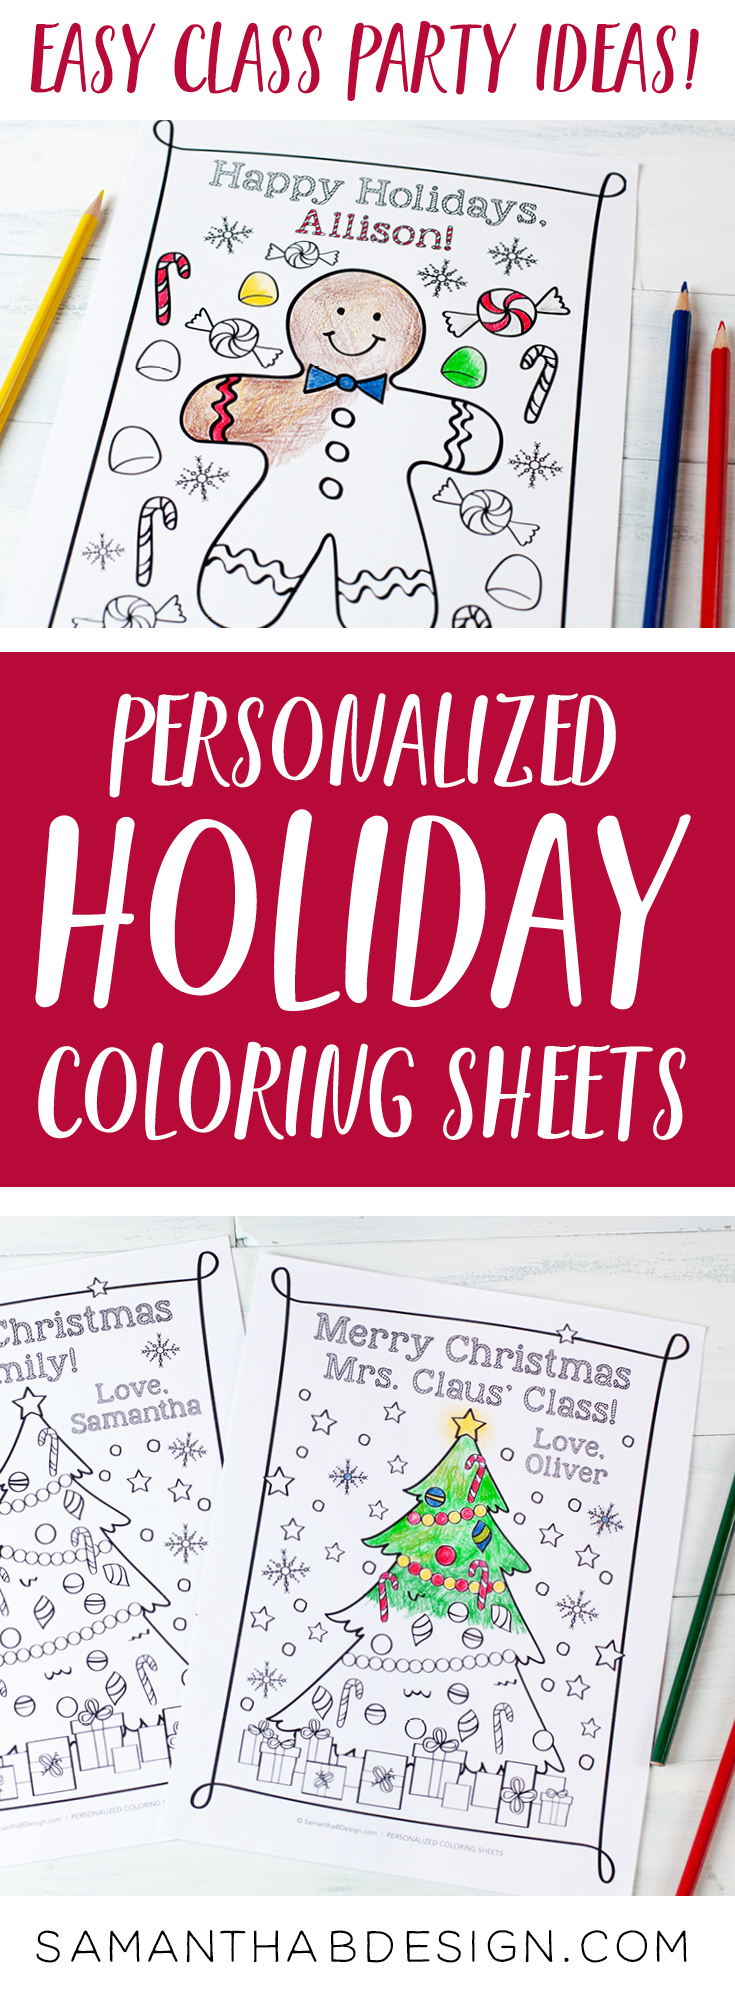 Christmas Coloring Sheets Class Party Ideas